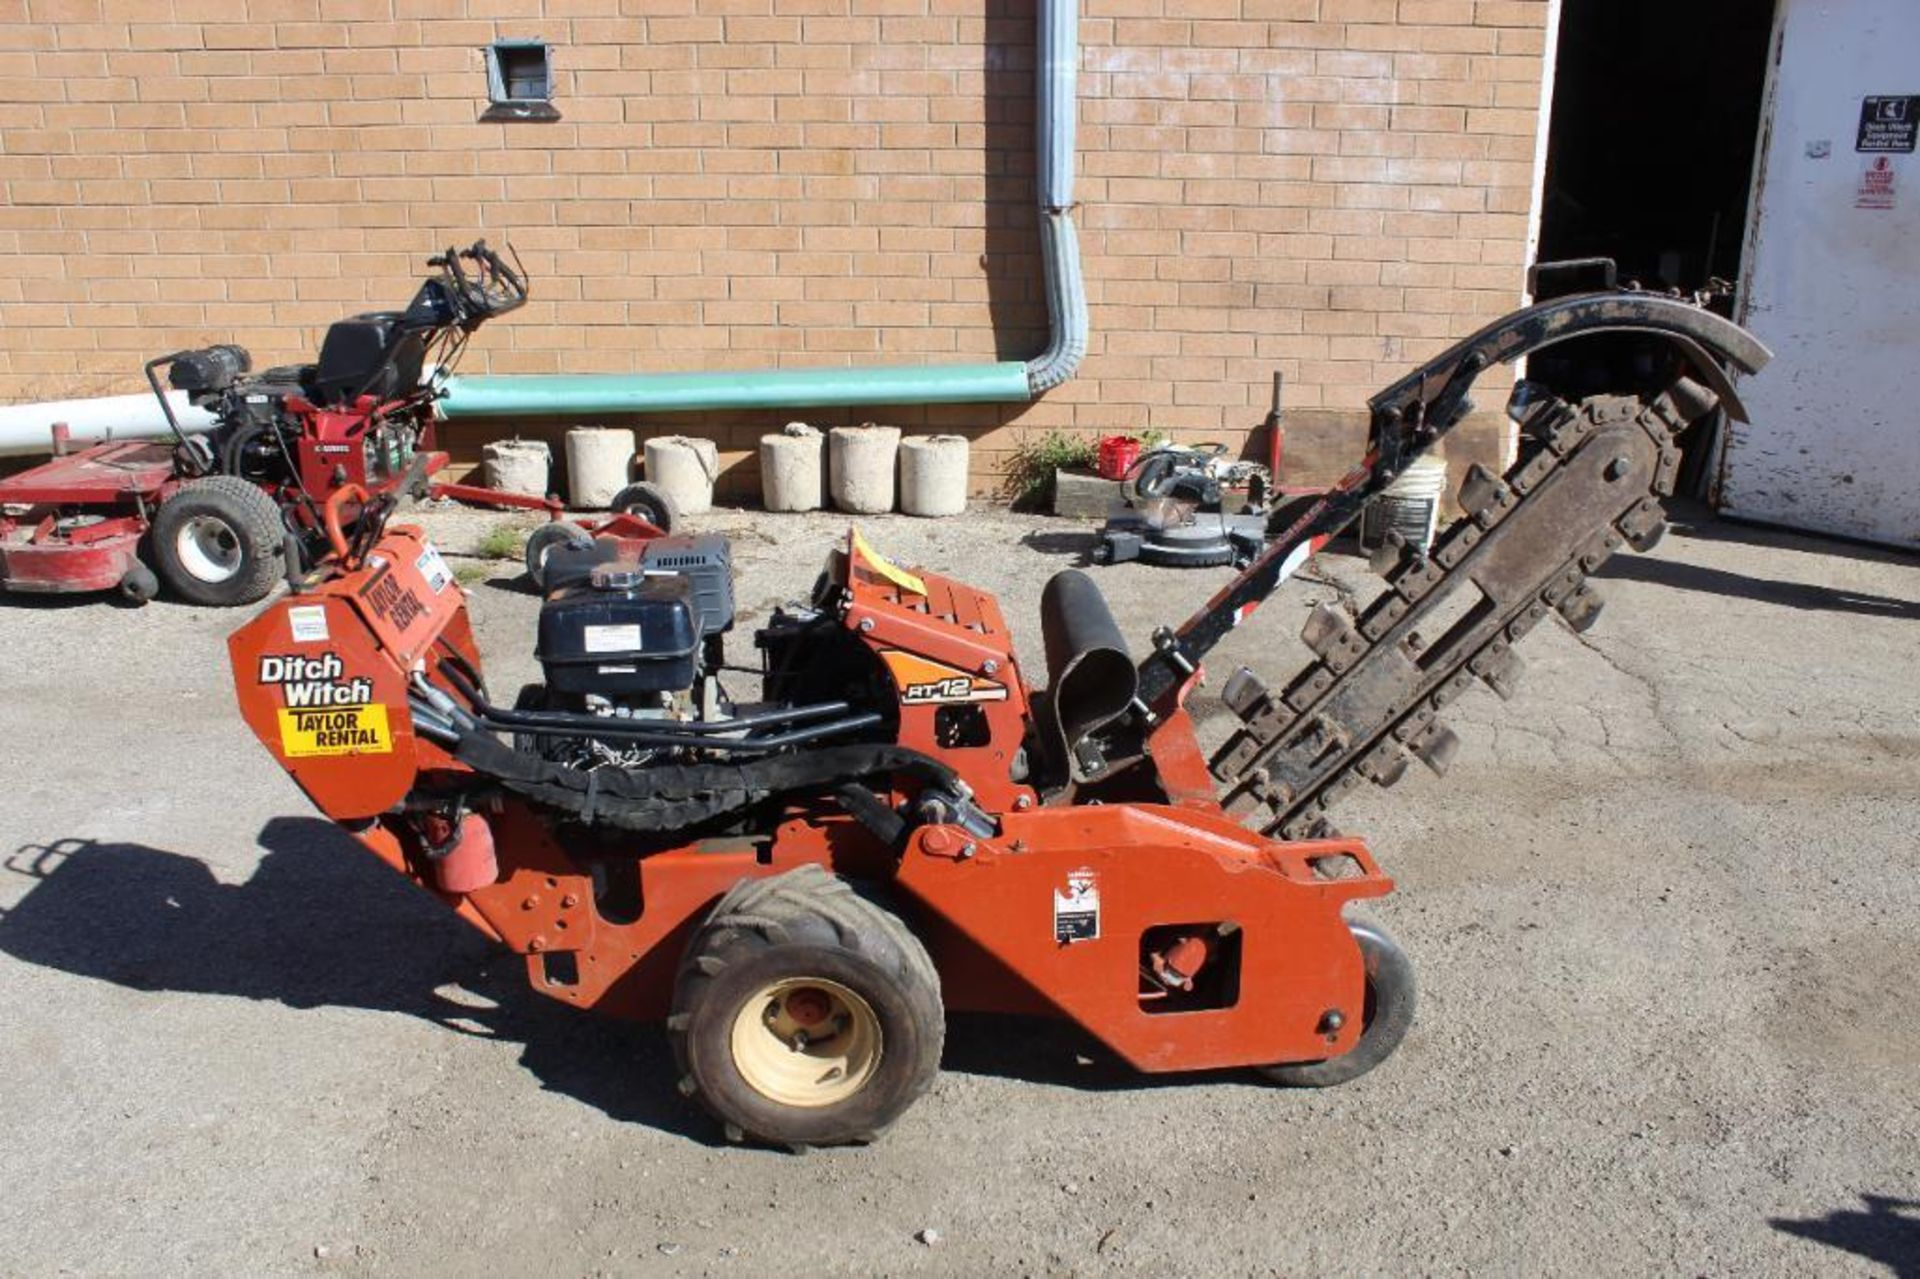 2012 Ditch Witch RT 12 Walk Behind Trencher, S/N CMWRT12JC0001567, 260 Indicated Hours - Image 2 of 4